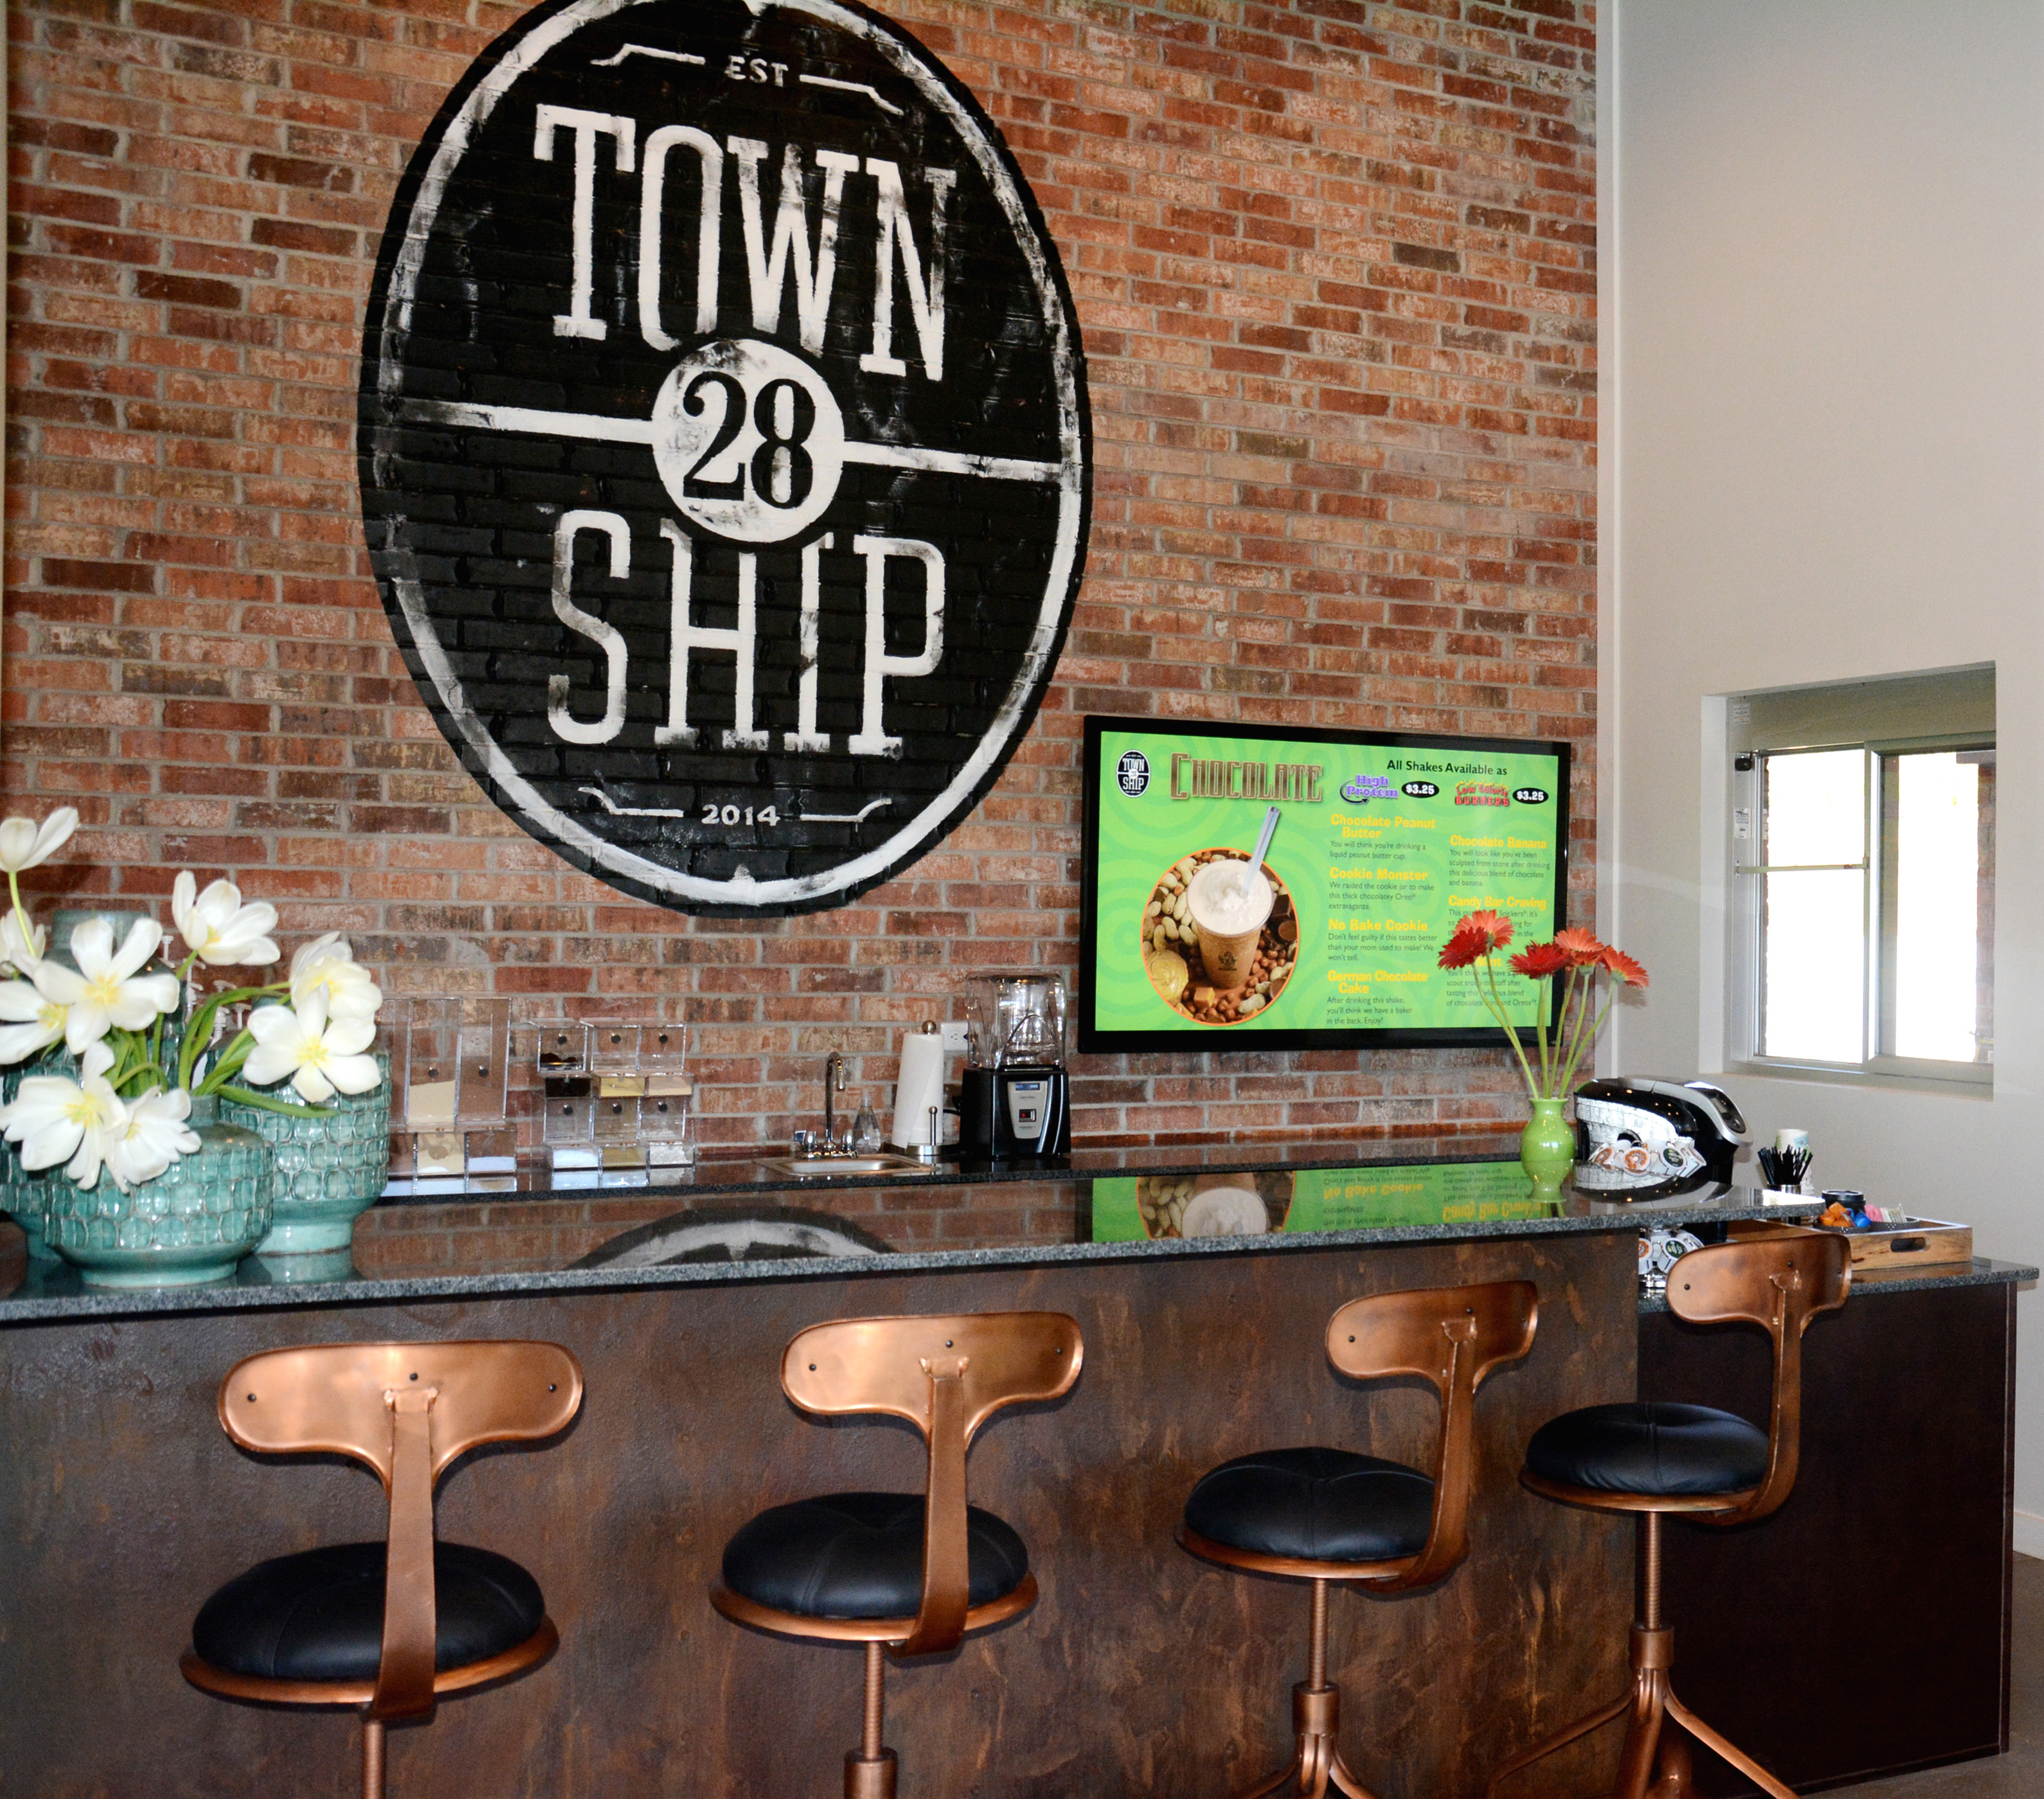 Township 28 Apartments - amenity clubhouse with smoothie bar and brick accent wall